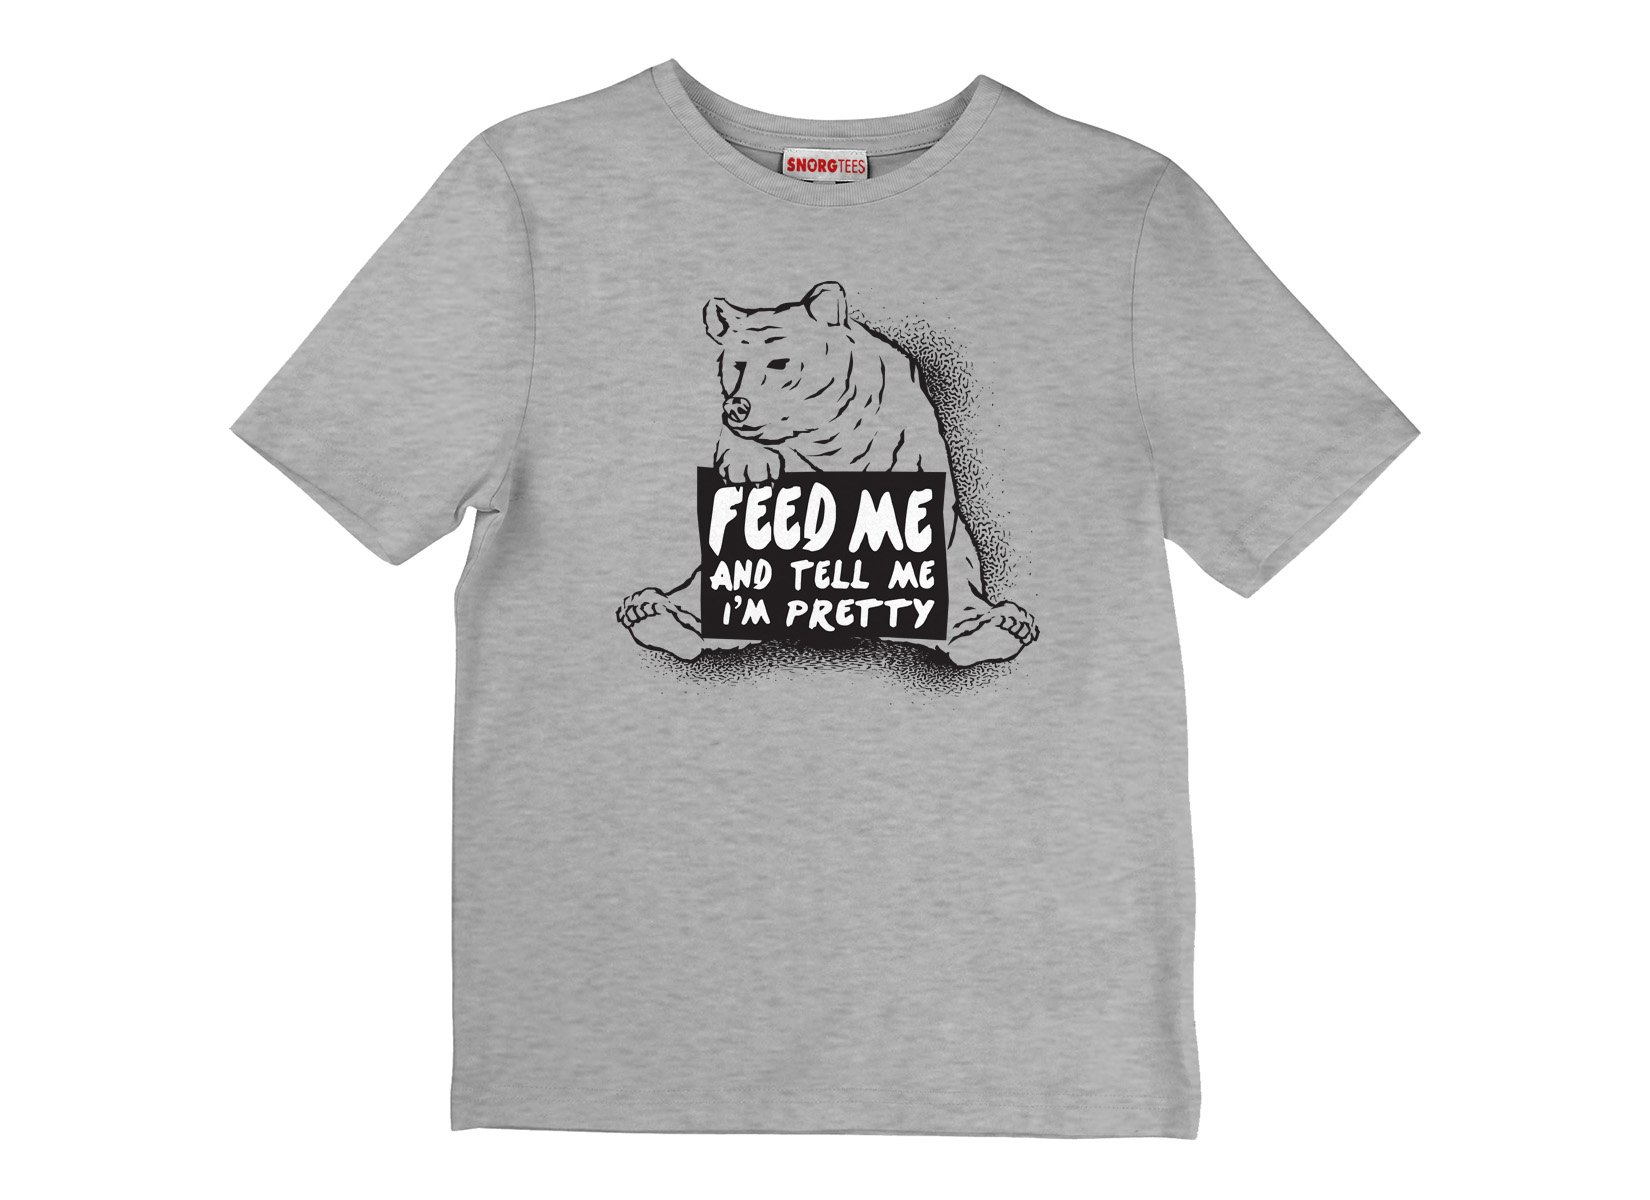 Feed Me on Kids T-Shirt